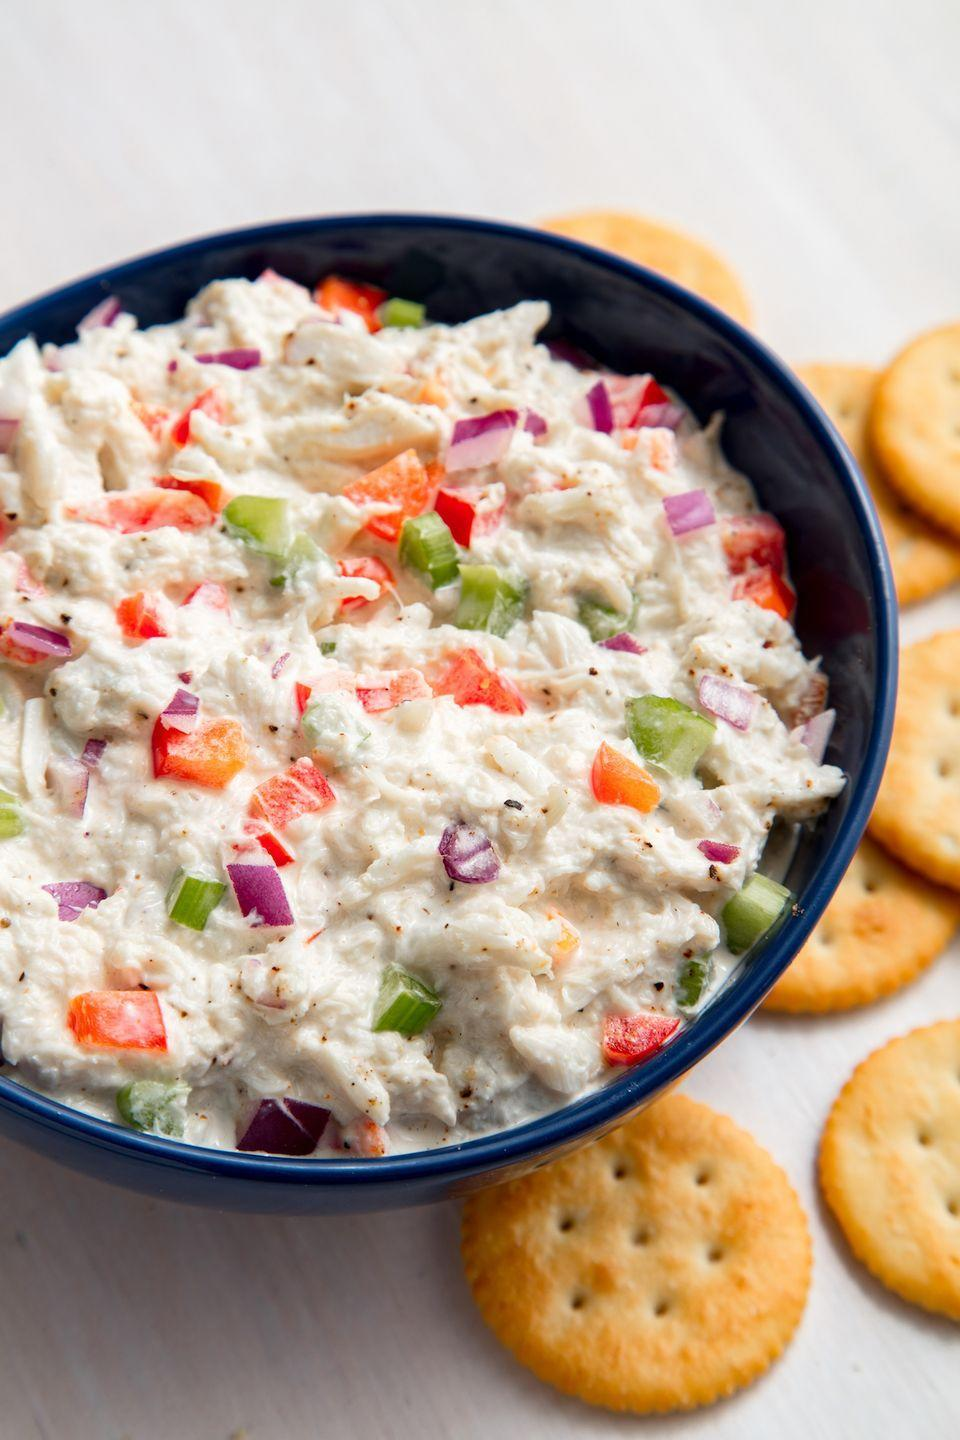 "<p>Get the crackers ready. </p><p>Get the recipe from <a href=""https://www.delish.com/cooking/recipe-ideas/a19885371/best-crab-meat-salad-recipe/"" rel=""nofollow noopener"" target=""_blank"" data-ylk=""slk:Delish"" class=""link rapid-noclick-resp"">Delish</a>.</p>"